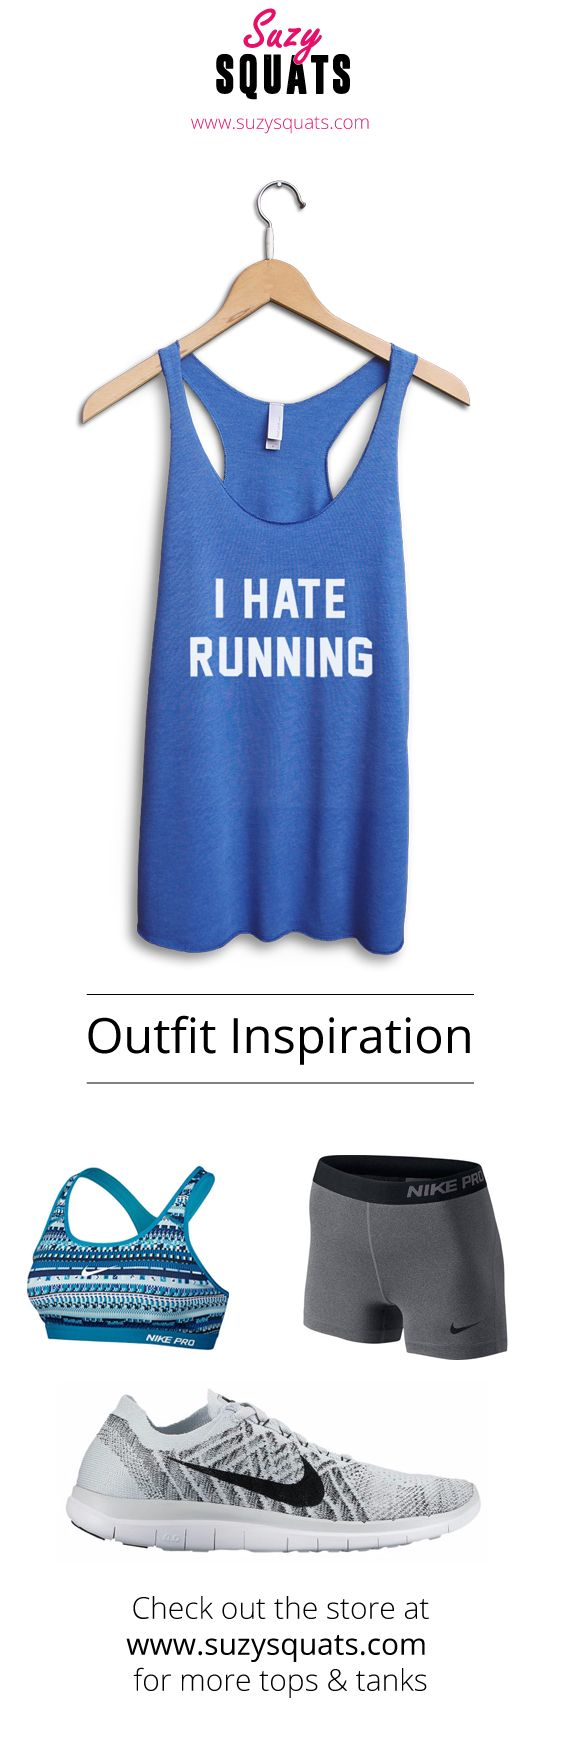 Show everyone how much you love running with this Suzy Squats running workout top, suitable as part of your running outfit or for casual wear. Click the link above to see more workout clothing that's perfect for even the most intense cardio workout at the Suzy Squats store.